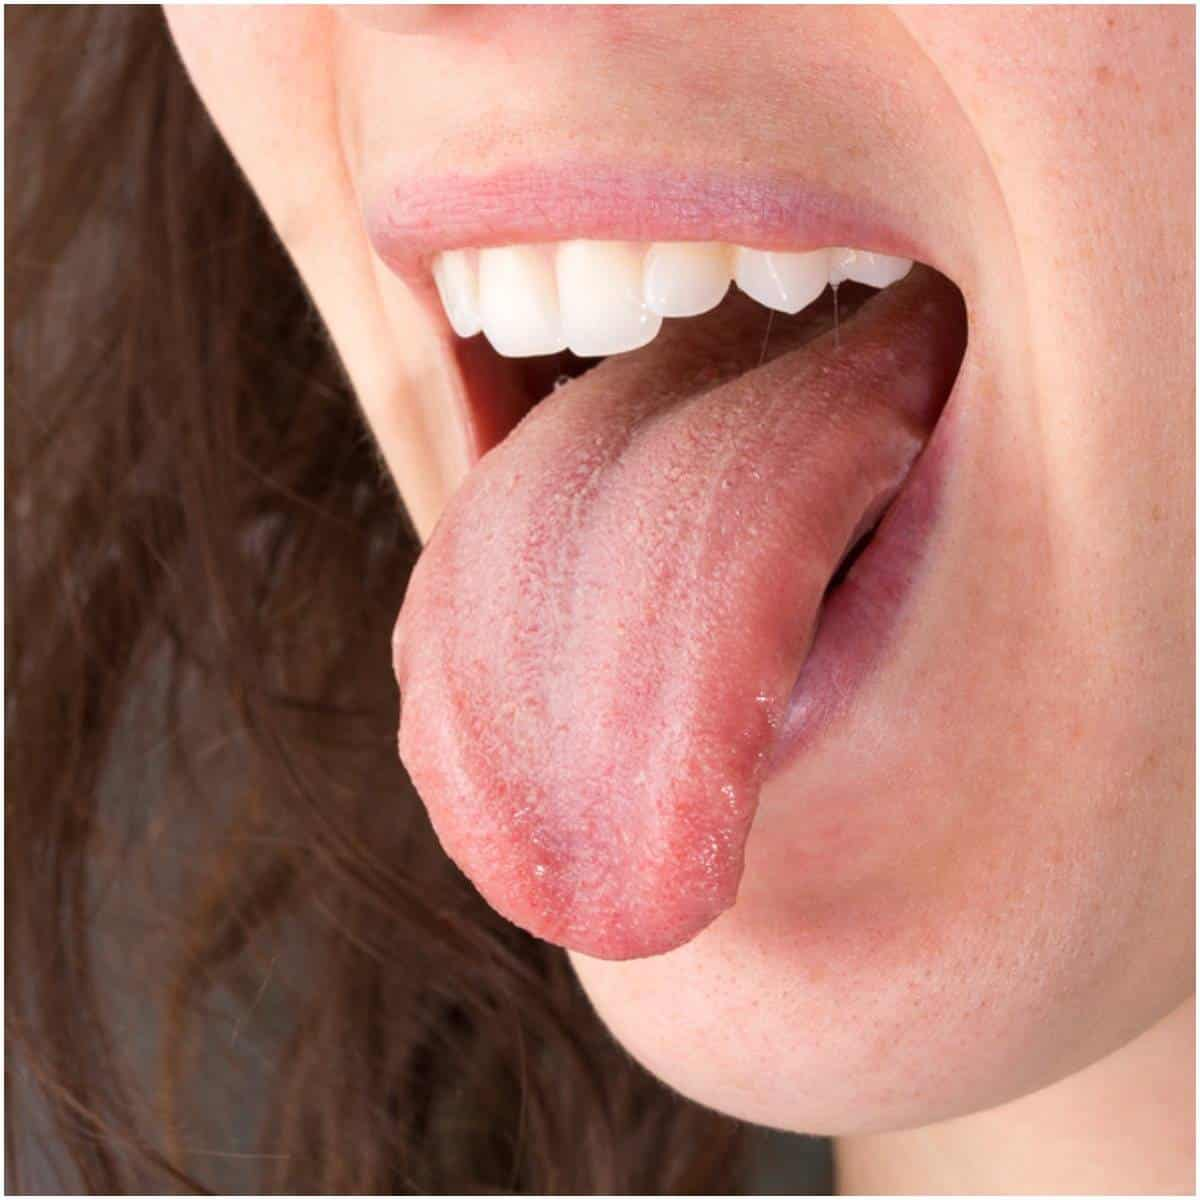 Symptoms of qi deficiency related to the tongue